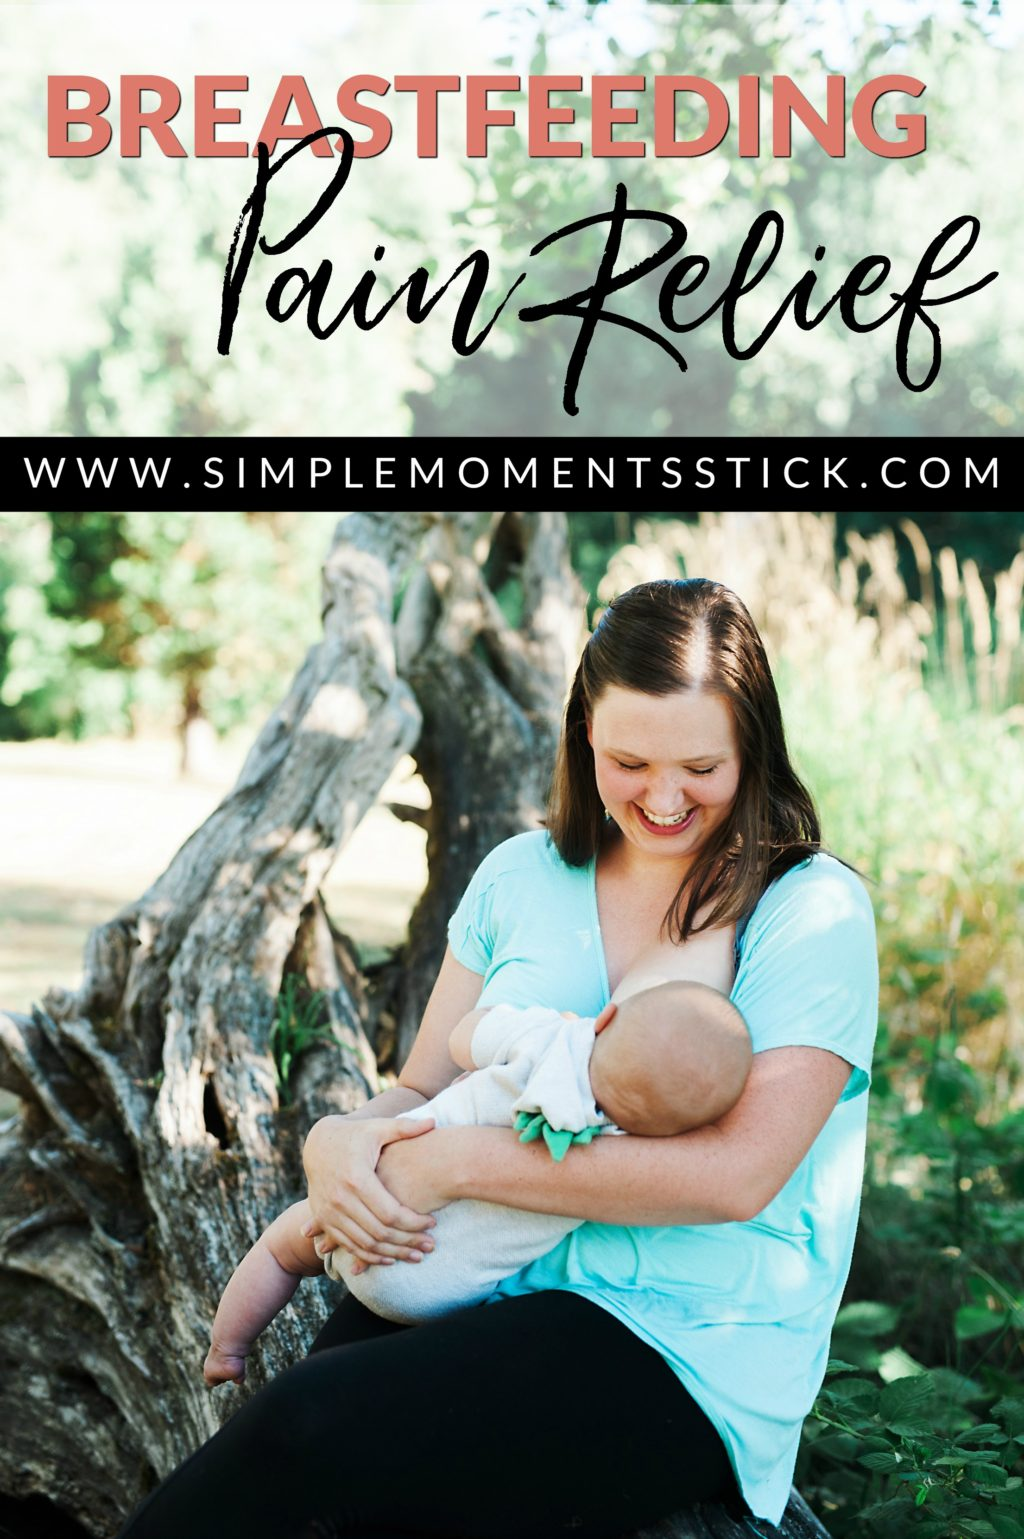 All the tips you need for breastfeeding pain relief! #breastfeeding #normalizebreastfeeding